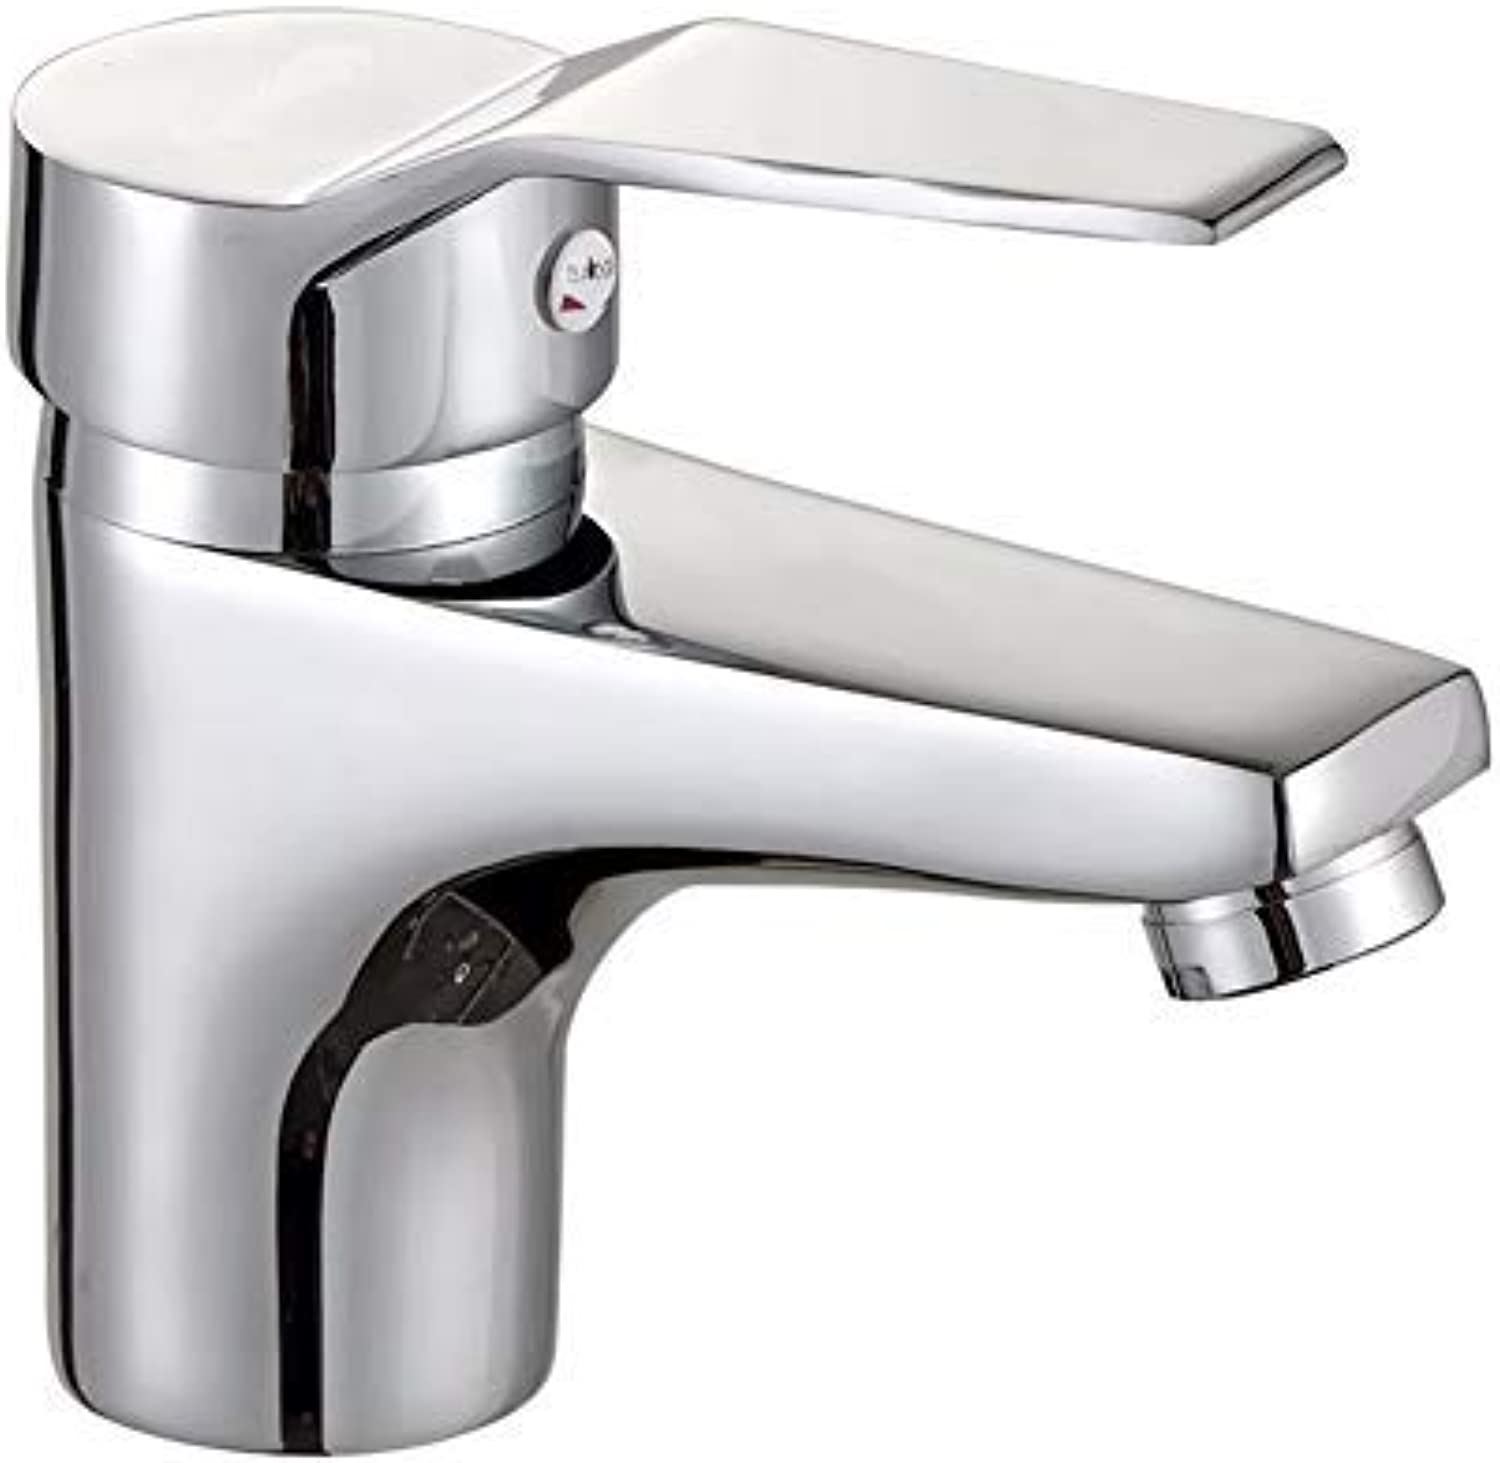 ZHAS Washbasin faucet, solid brass mixer for chrome-plated single-lever mixer